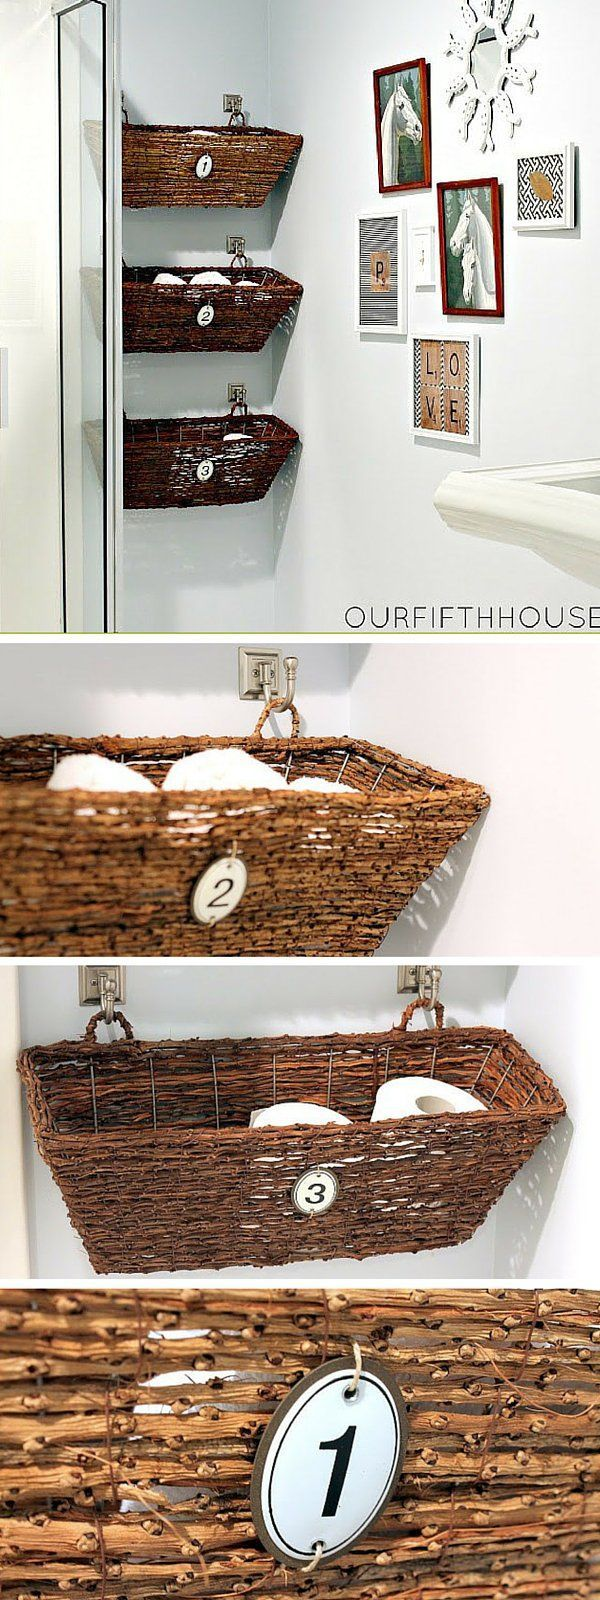 Check out the tutorial: #DIY Window Box Bathroom Storage #crafts #homedecor Master Bath potty room - just above garbage pail.